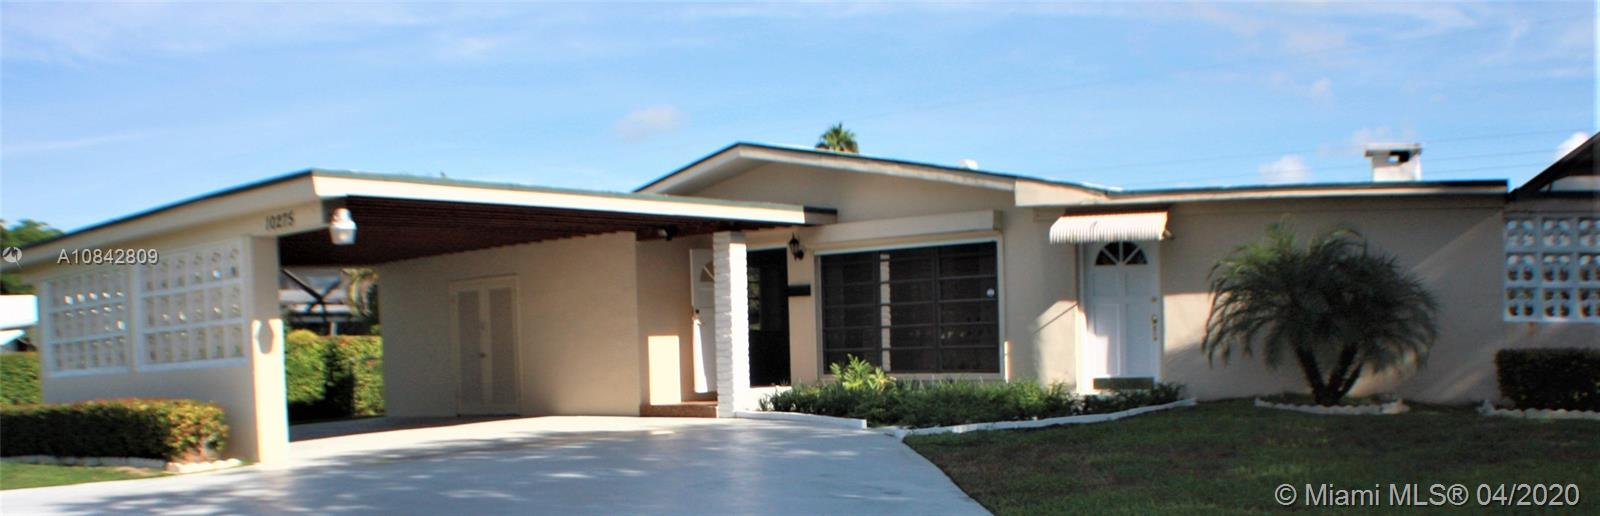 10275 SW 112th St  For Sale A10842809, FL